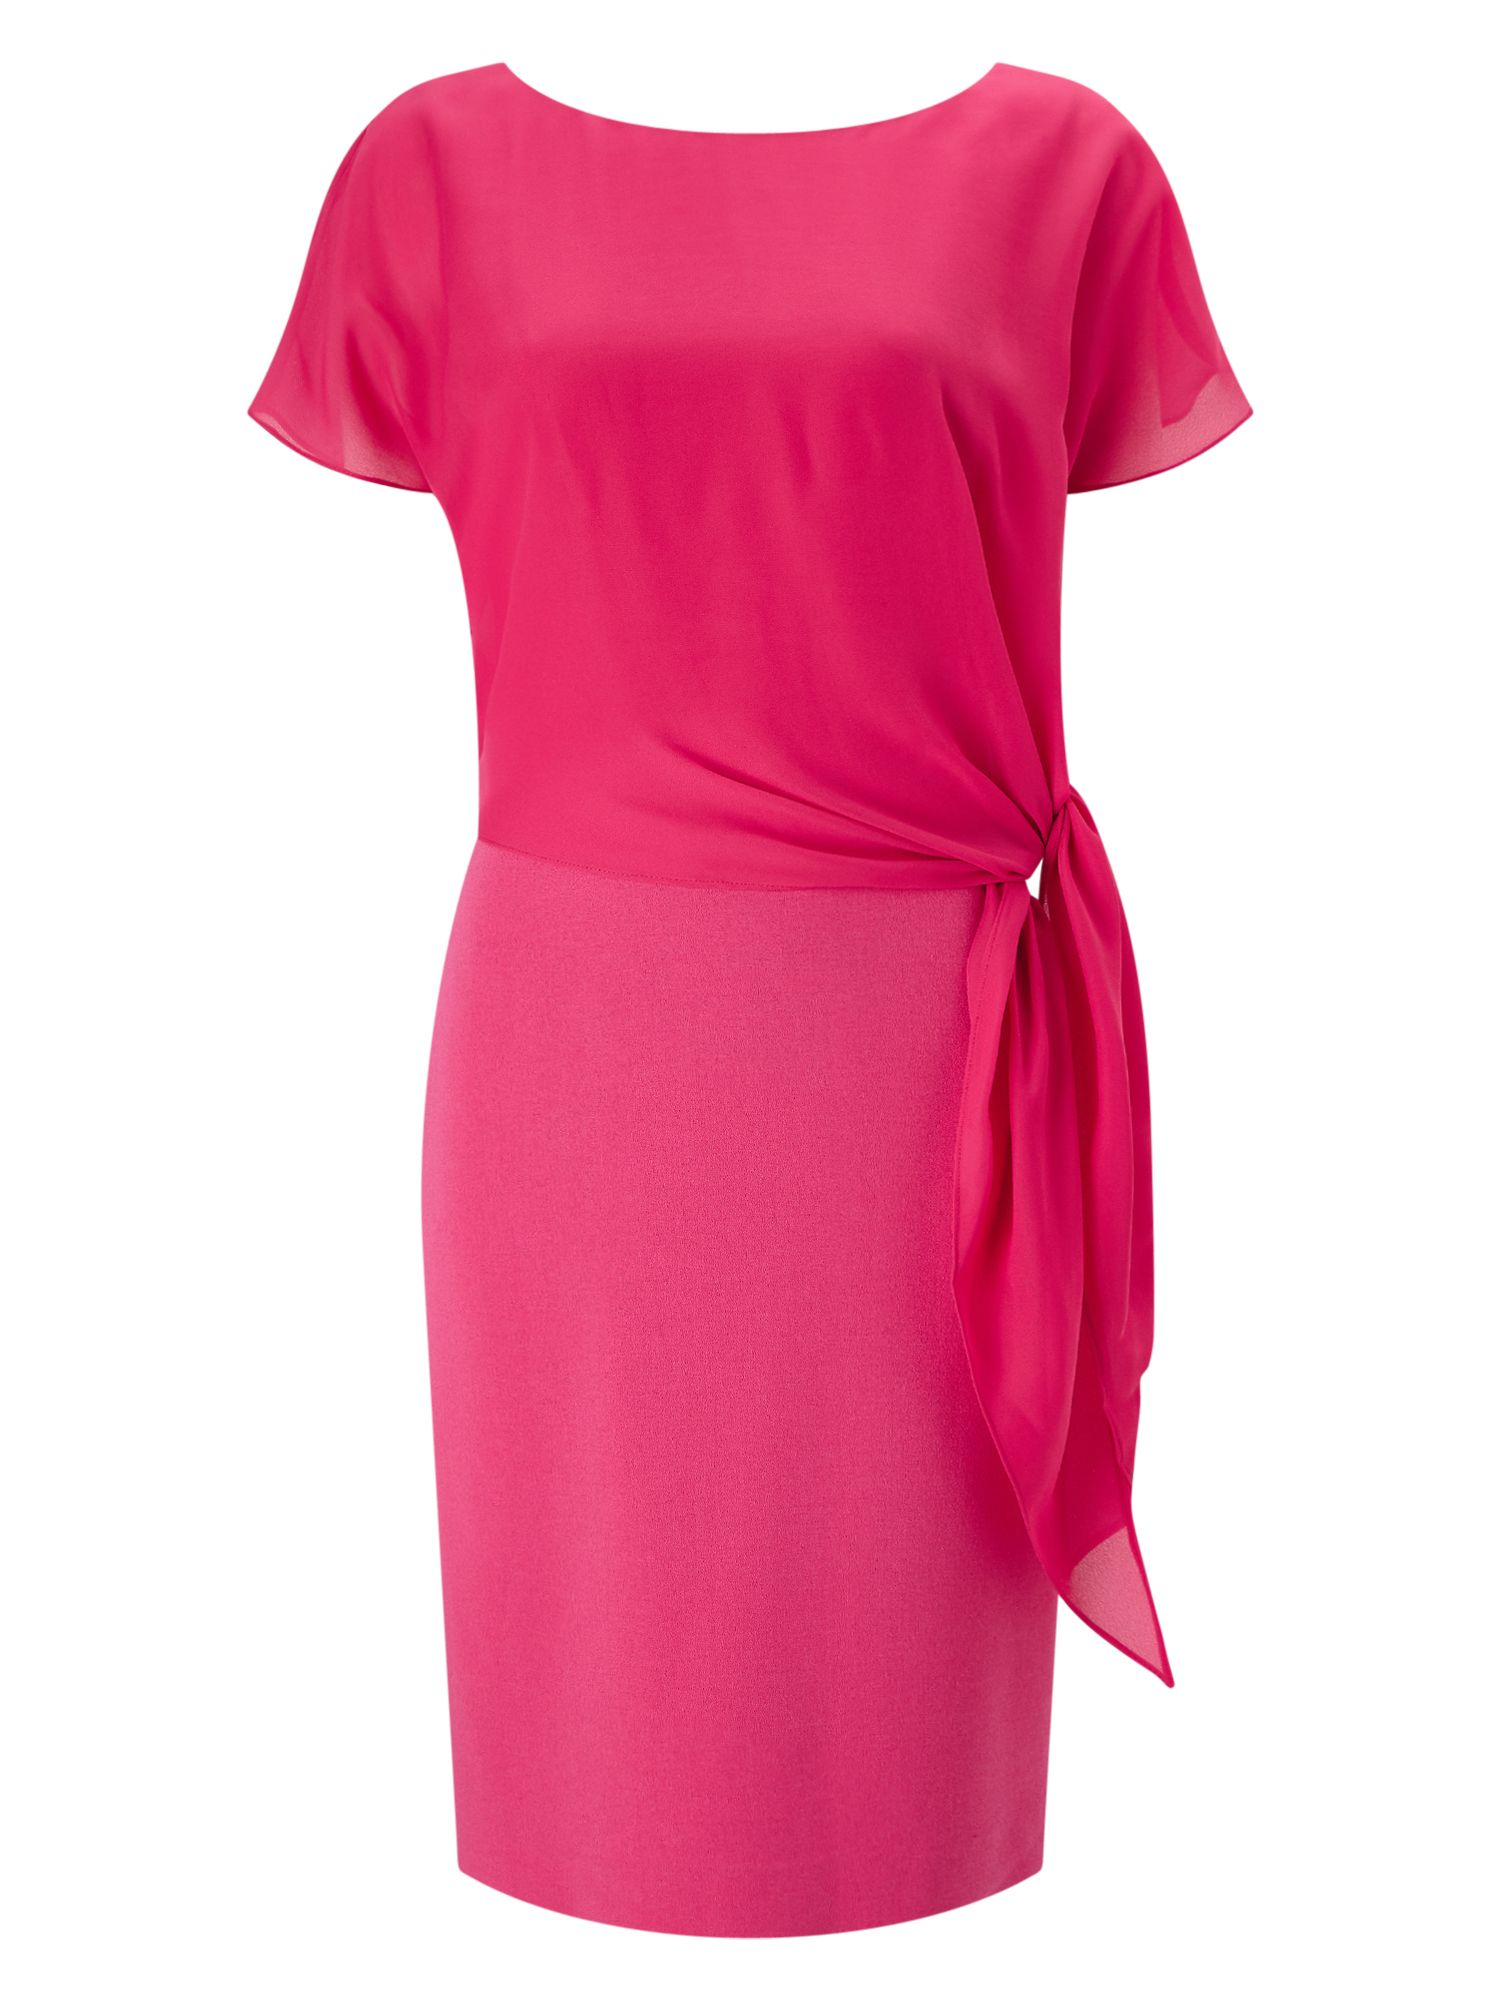 Jacques Vert Crepe And Chiffon Dress, Pink